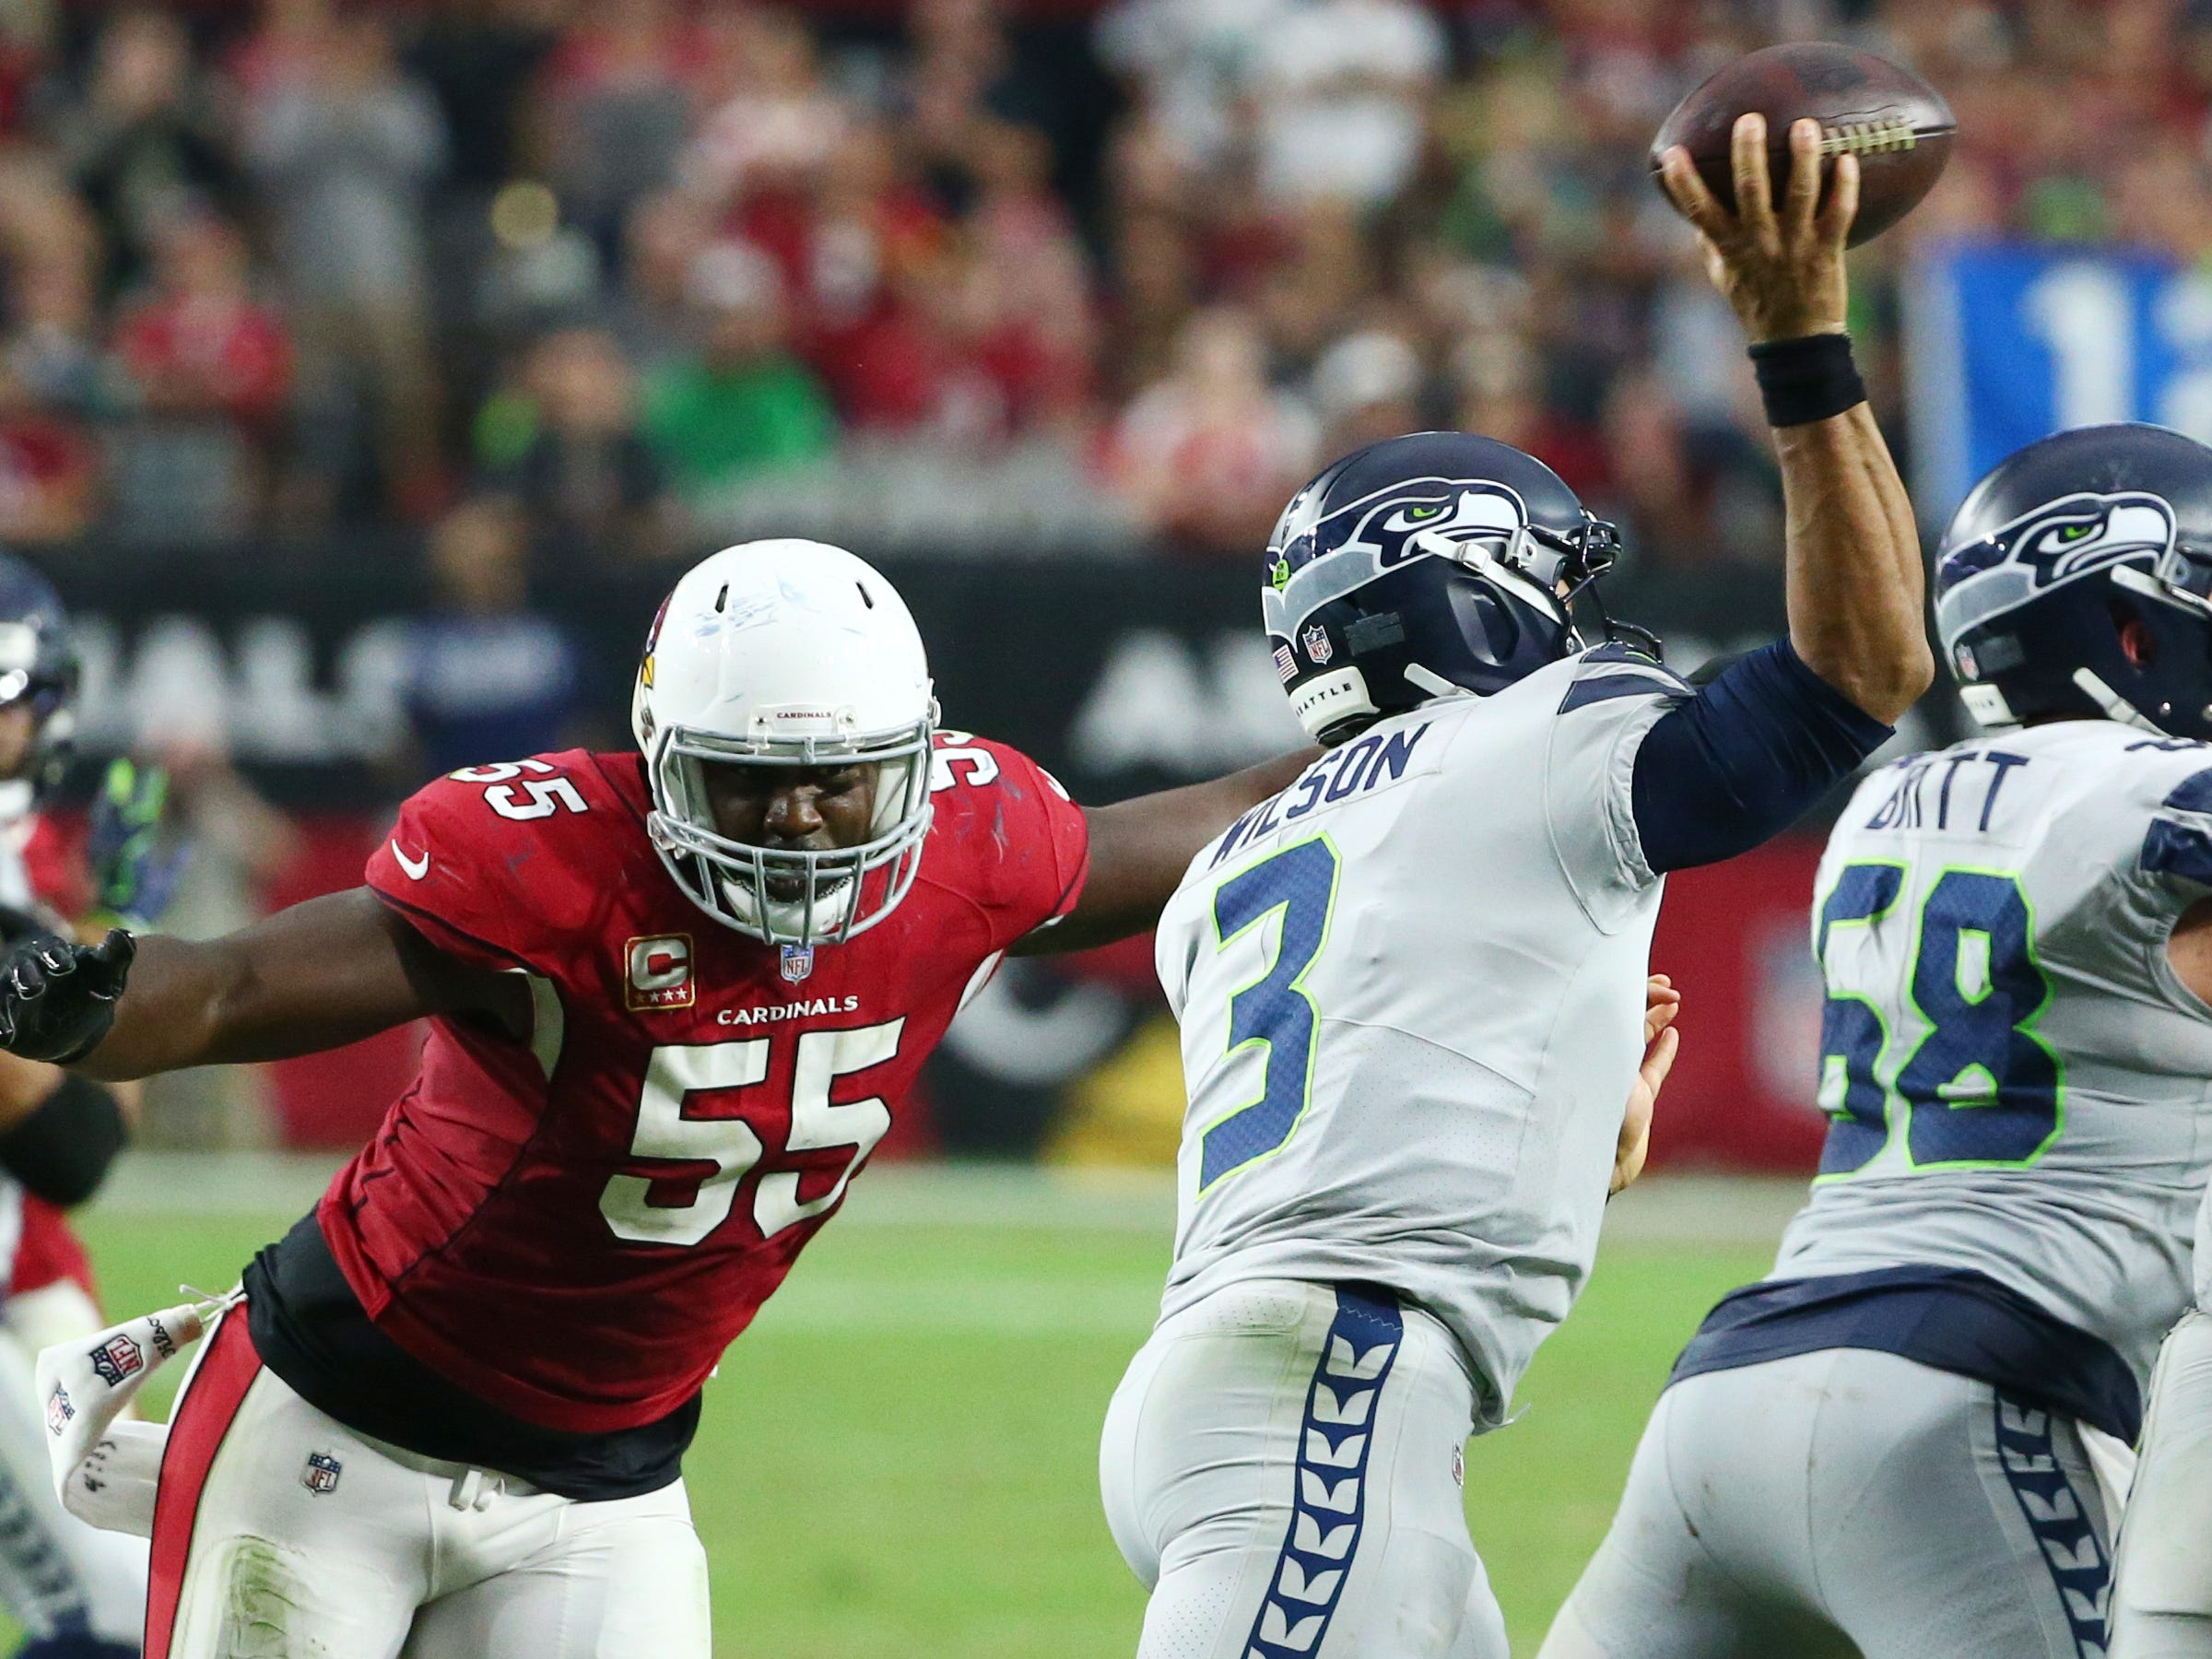 Arizona Cardinals linebacker Chandler Jones pressures Seattle Seahawks quarterback Russell Wilson in the first half at State Farm Stadium in Glendale, Ariz.